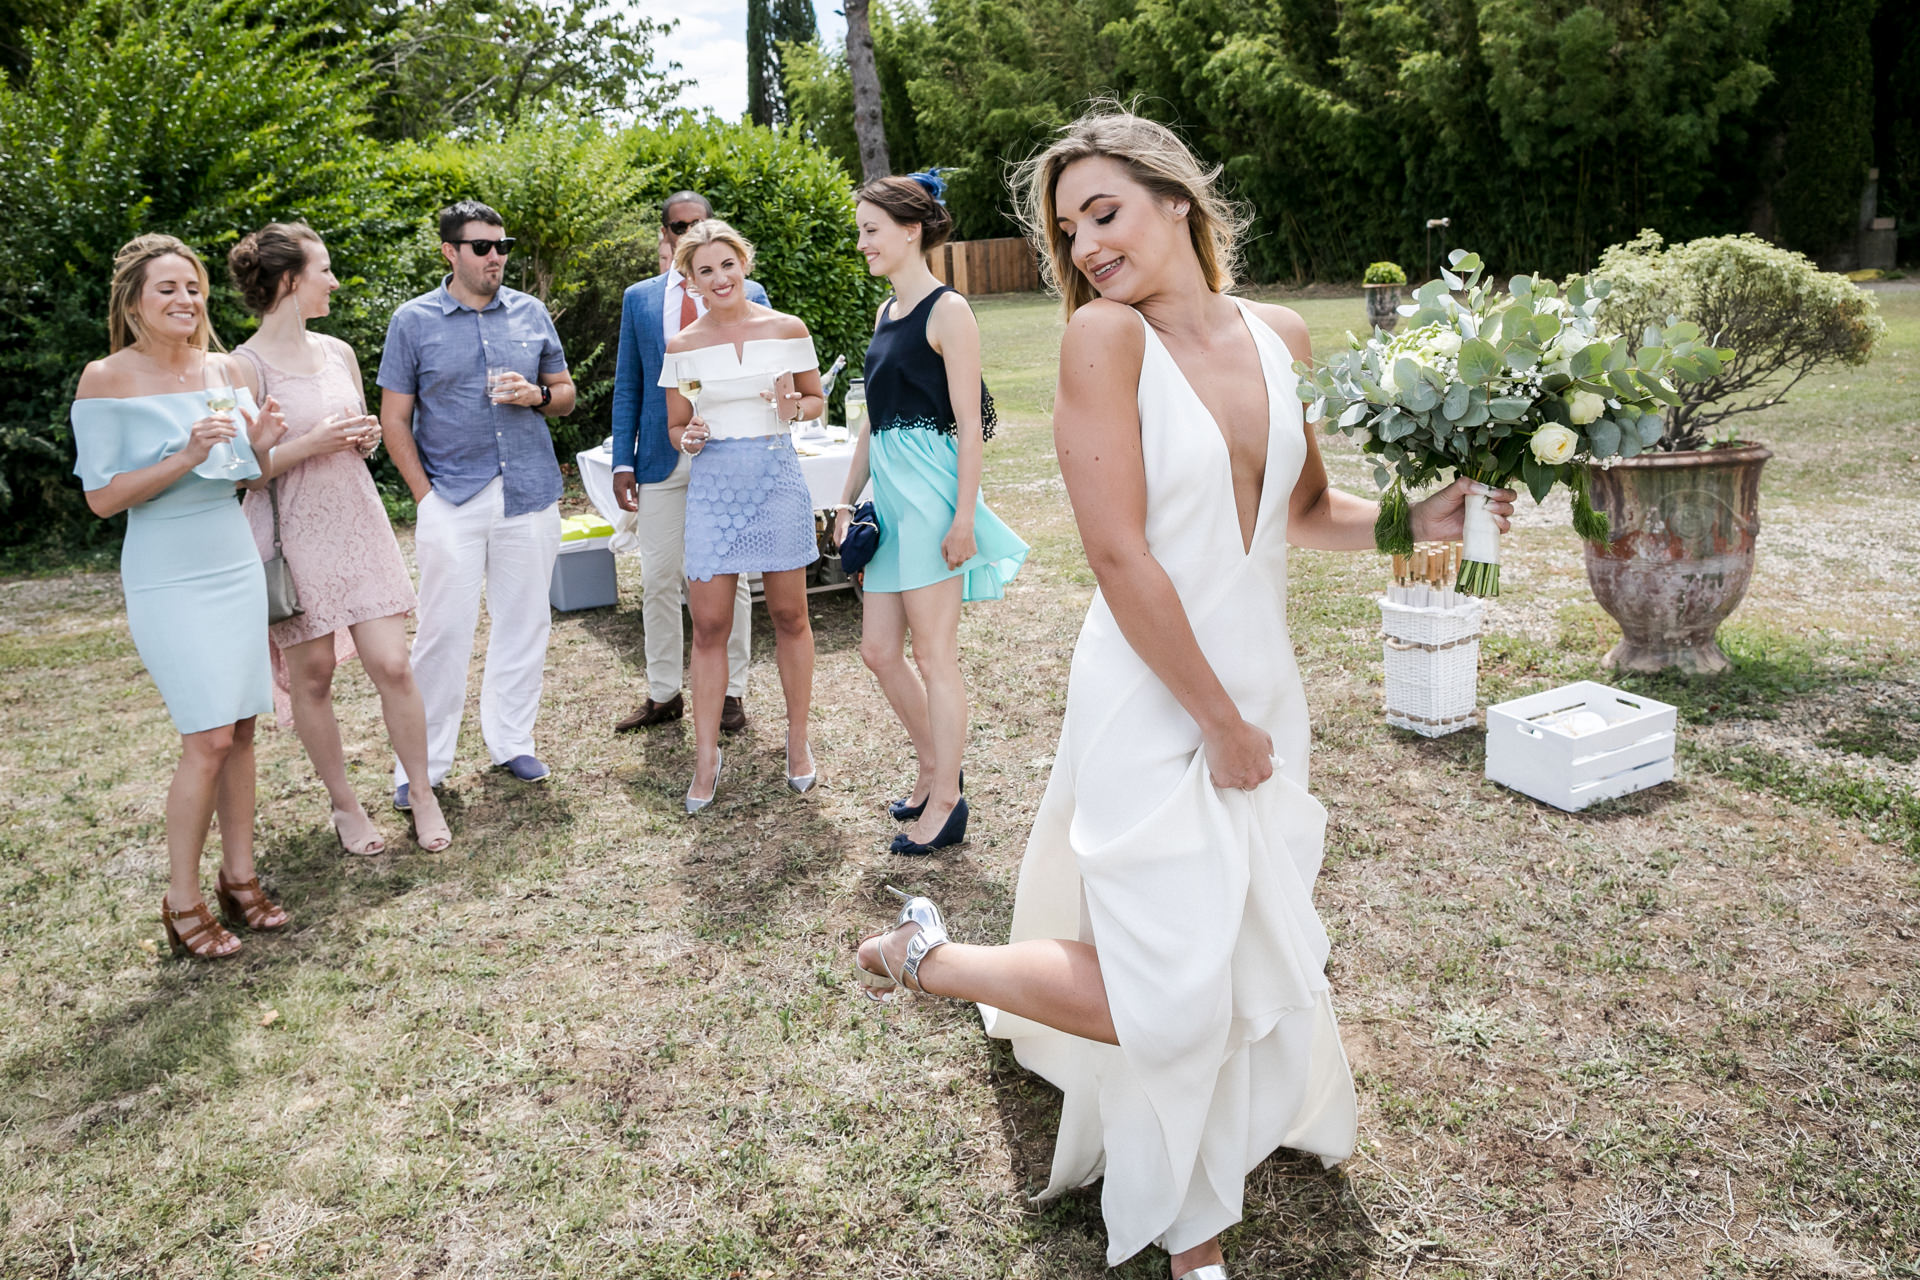 France Vineyard Winery Elopement Image | The bride shows off her stunning shoes